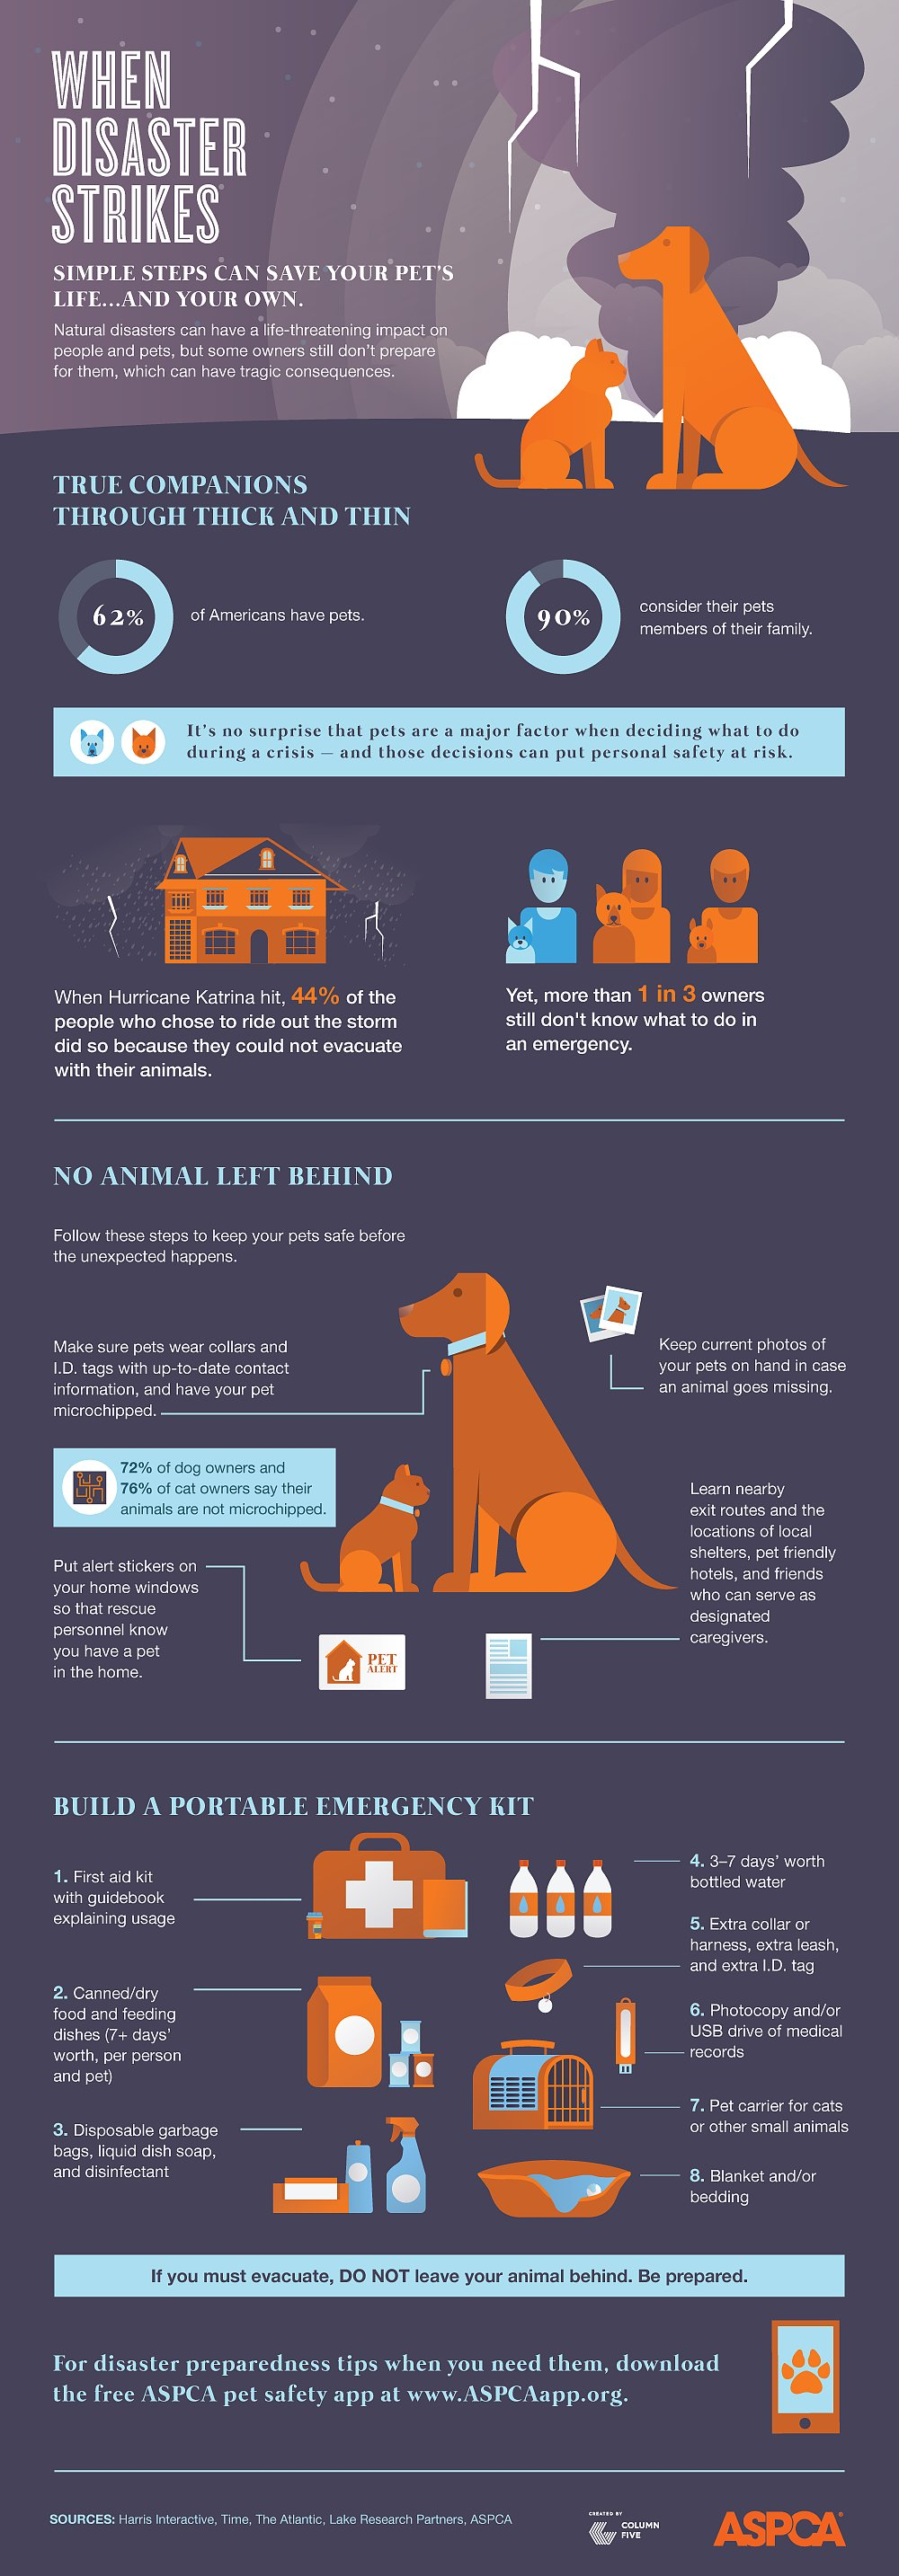 Disaster Preparedness with Pets